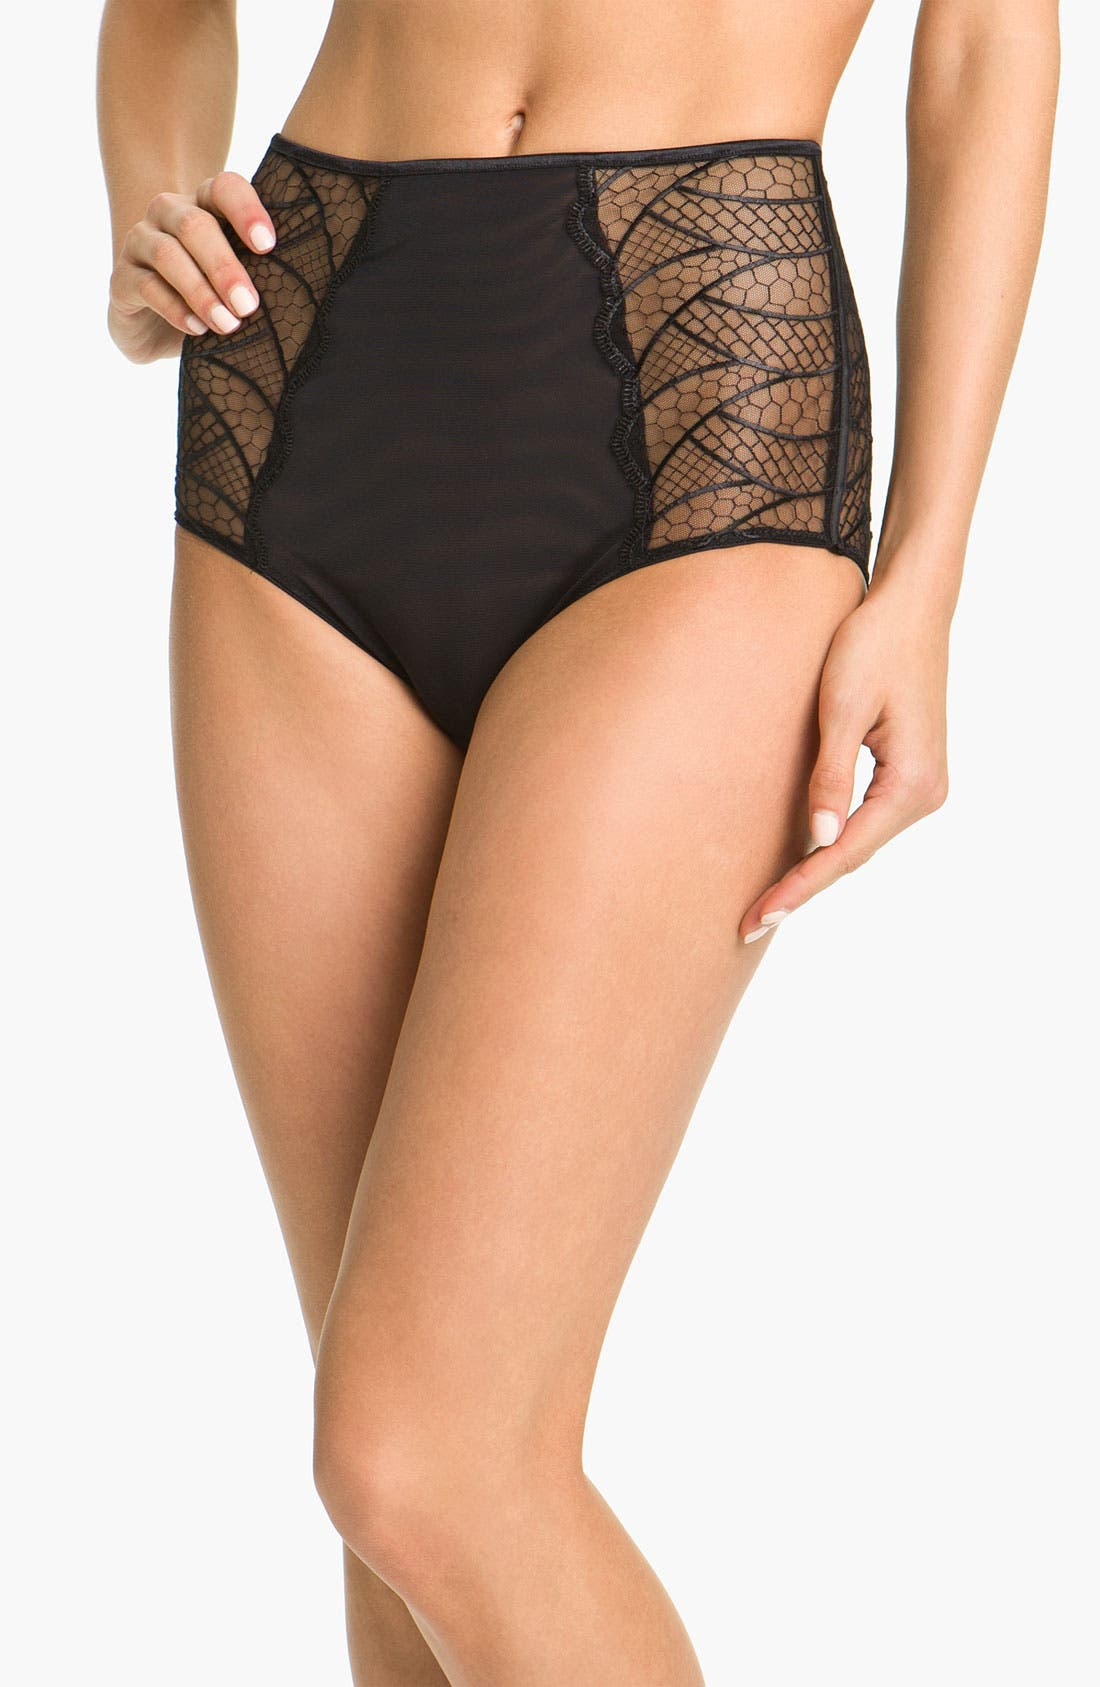 Main Image - Chantelle Intimates 'Hypnotique' High Waist Briefs